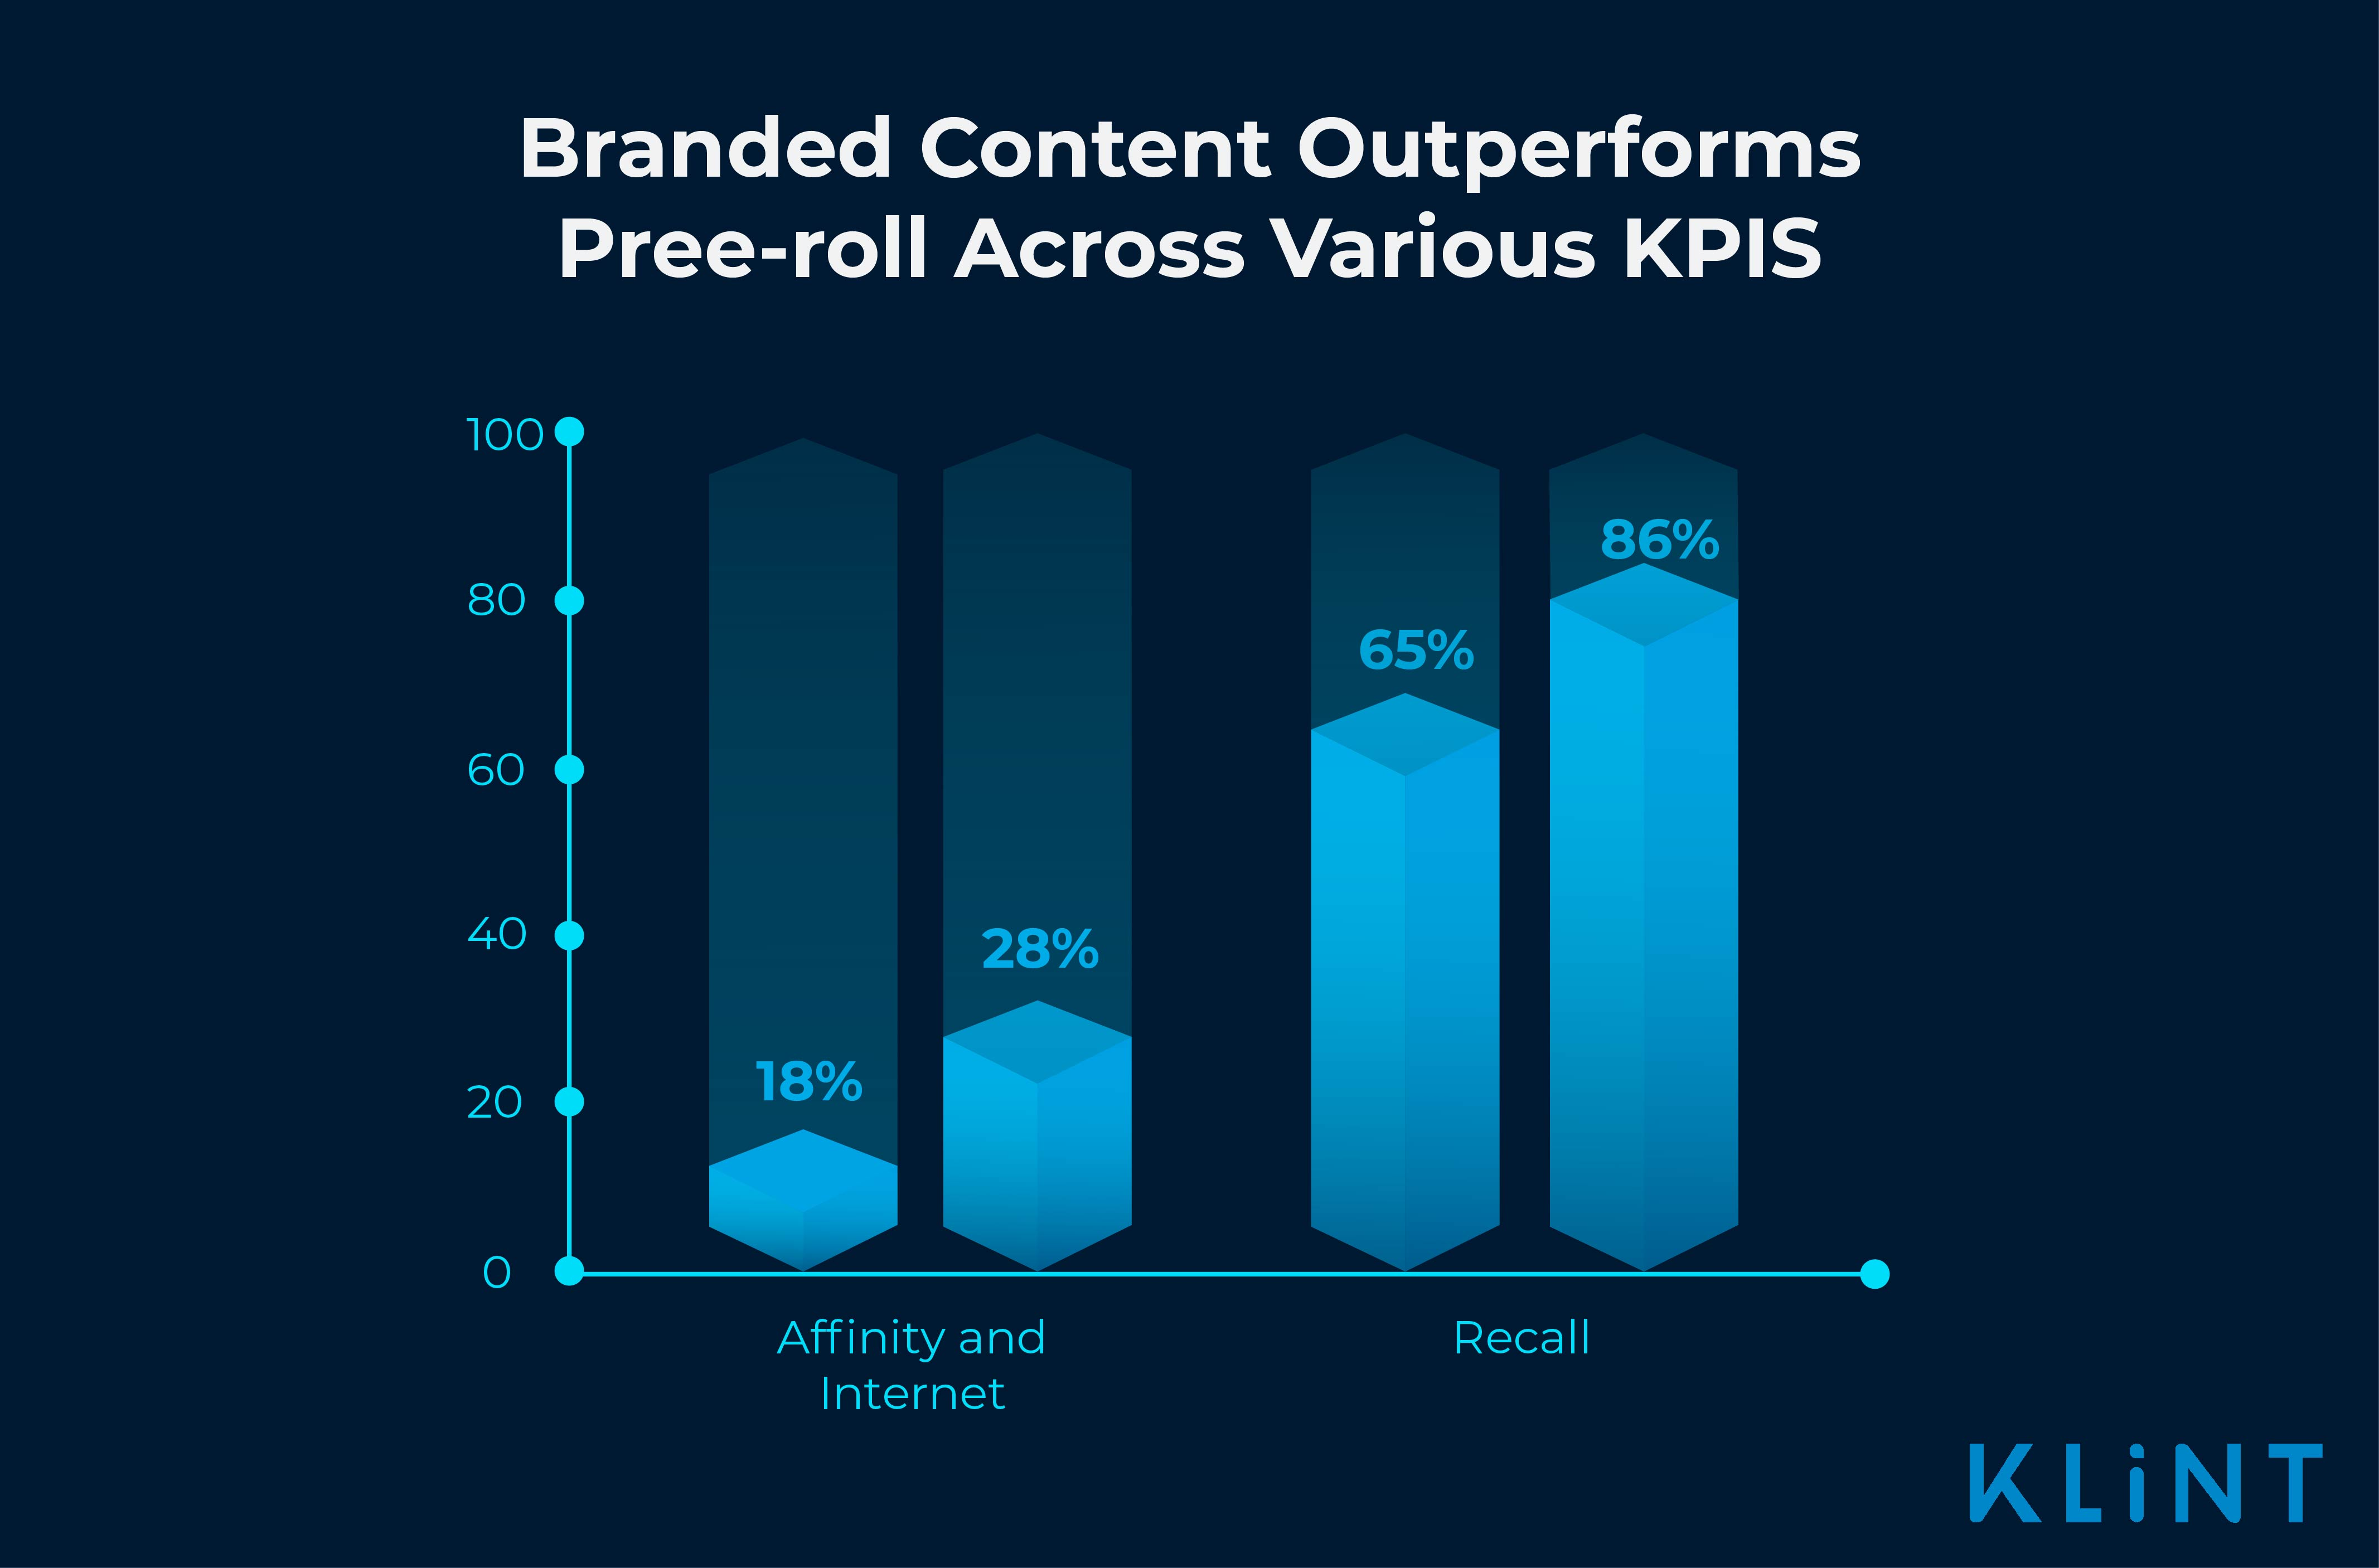 infographic showing branded content outperforming pre-roll content for recall and affinity & intent